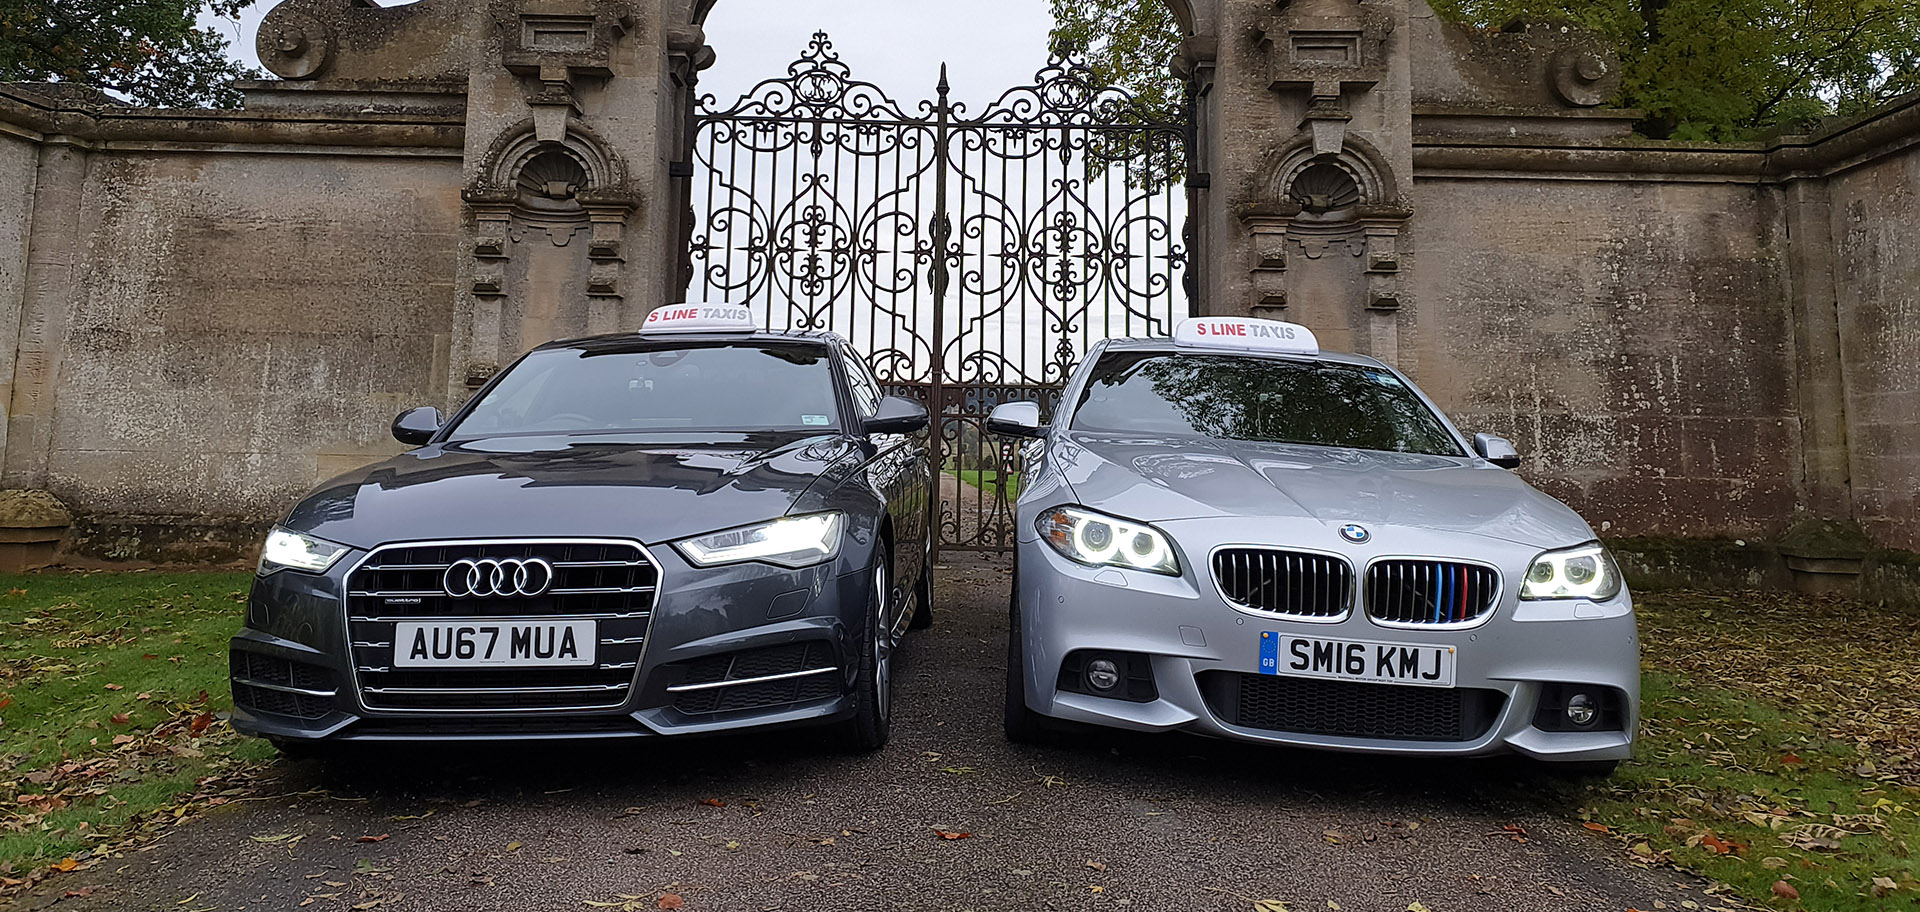 taxi grantham grantham taxis airport transfers grantham train station taxis